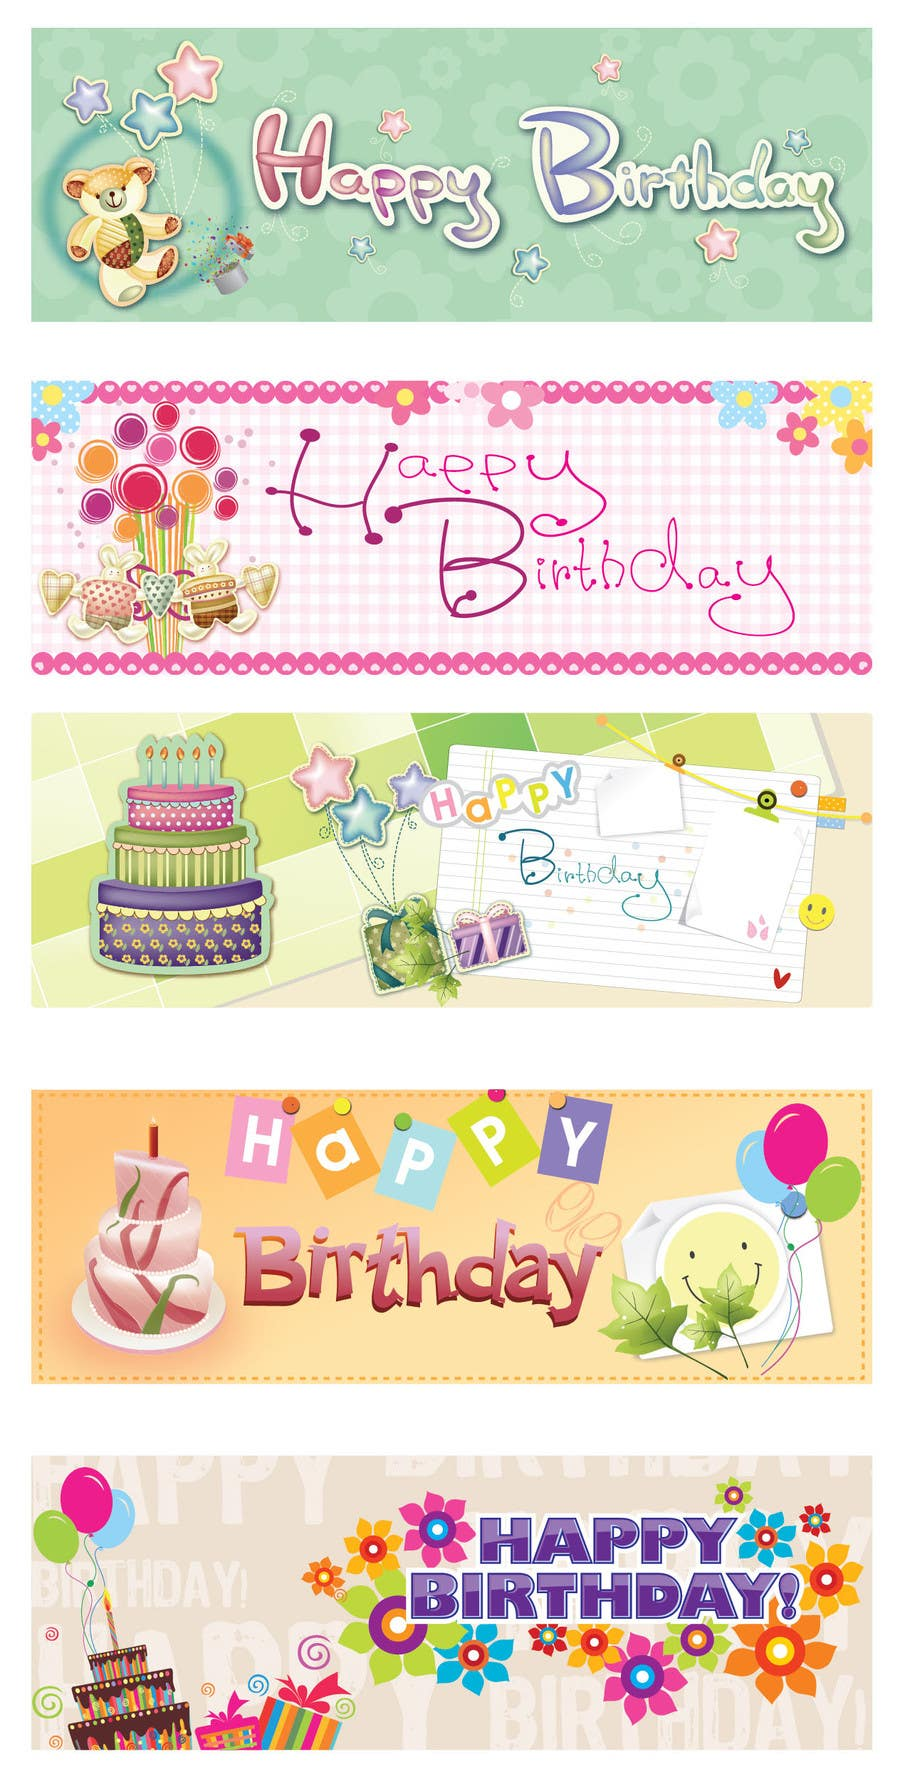 #2 for i need 5 designs for birthday banners by sedayu